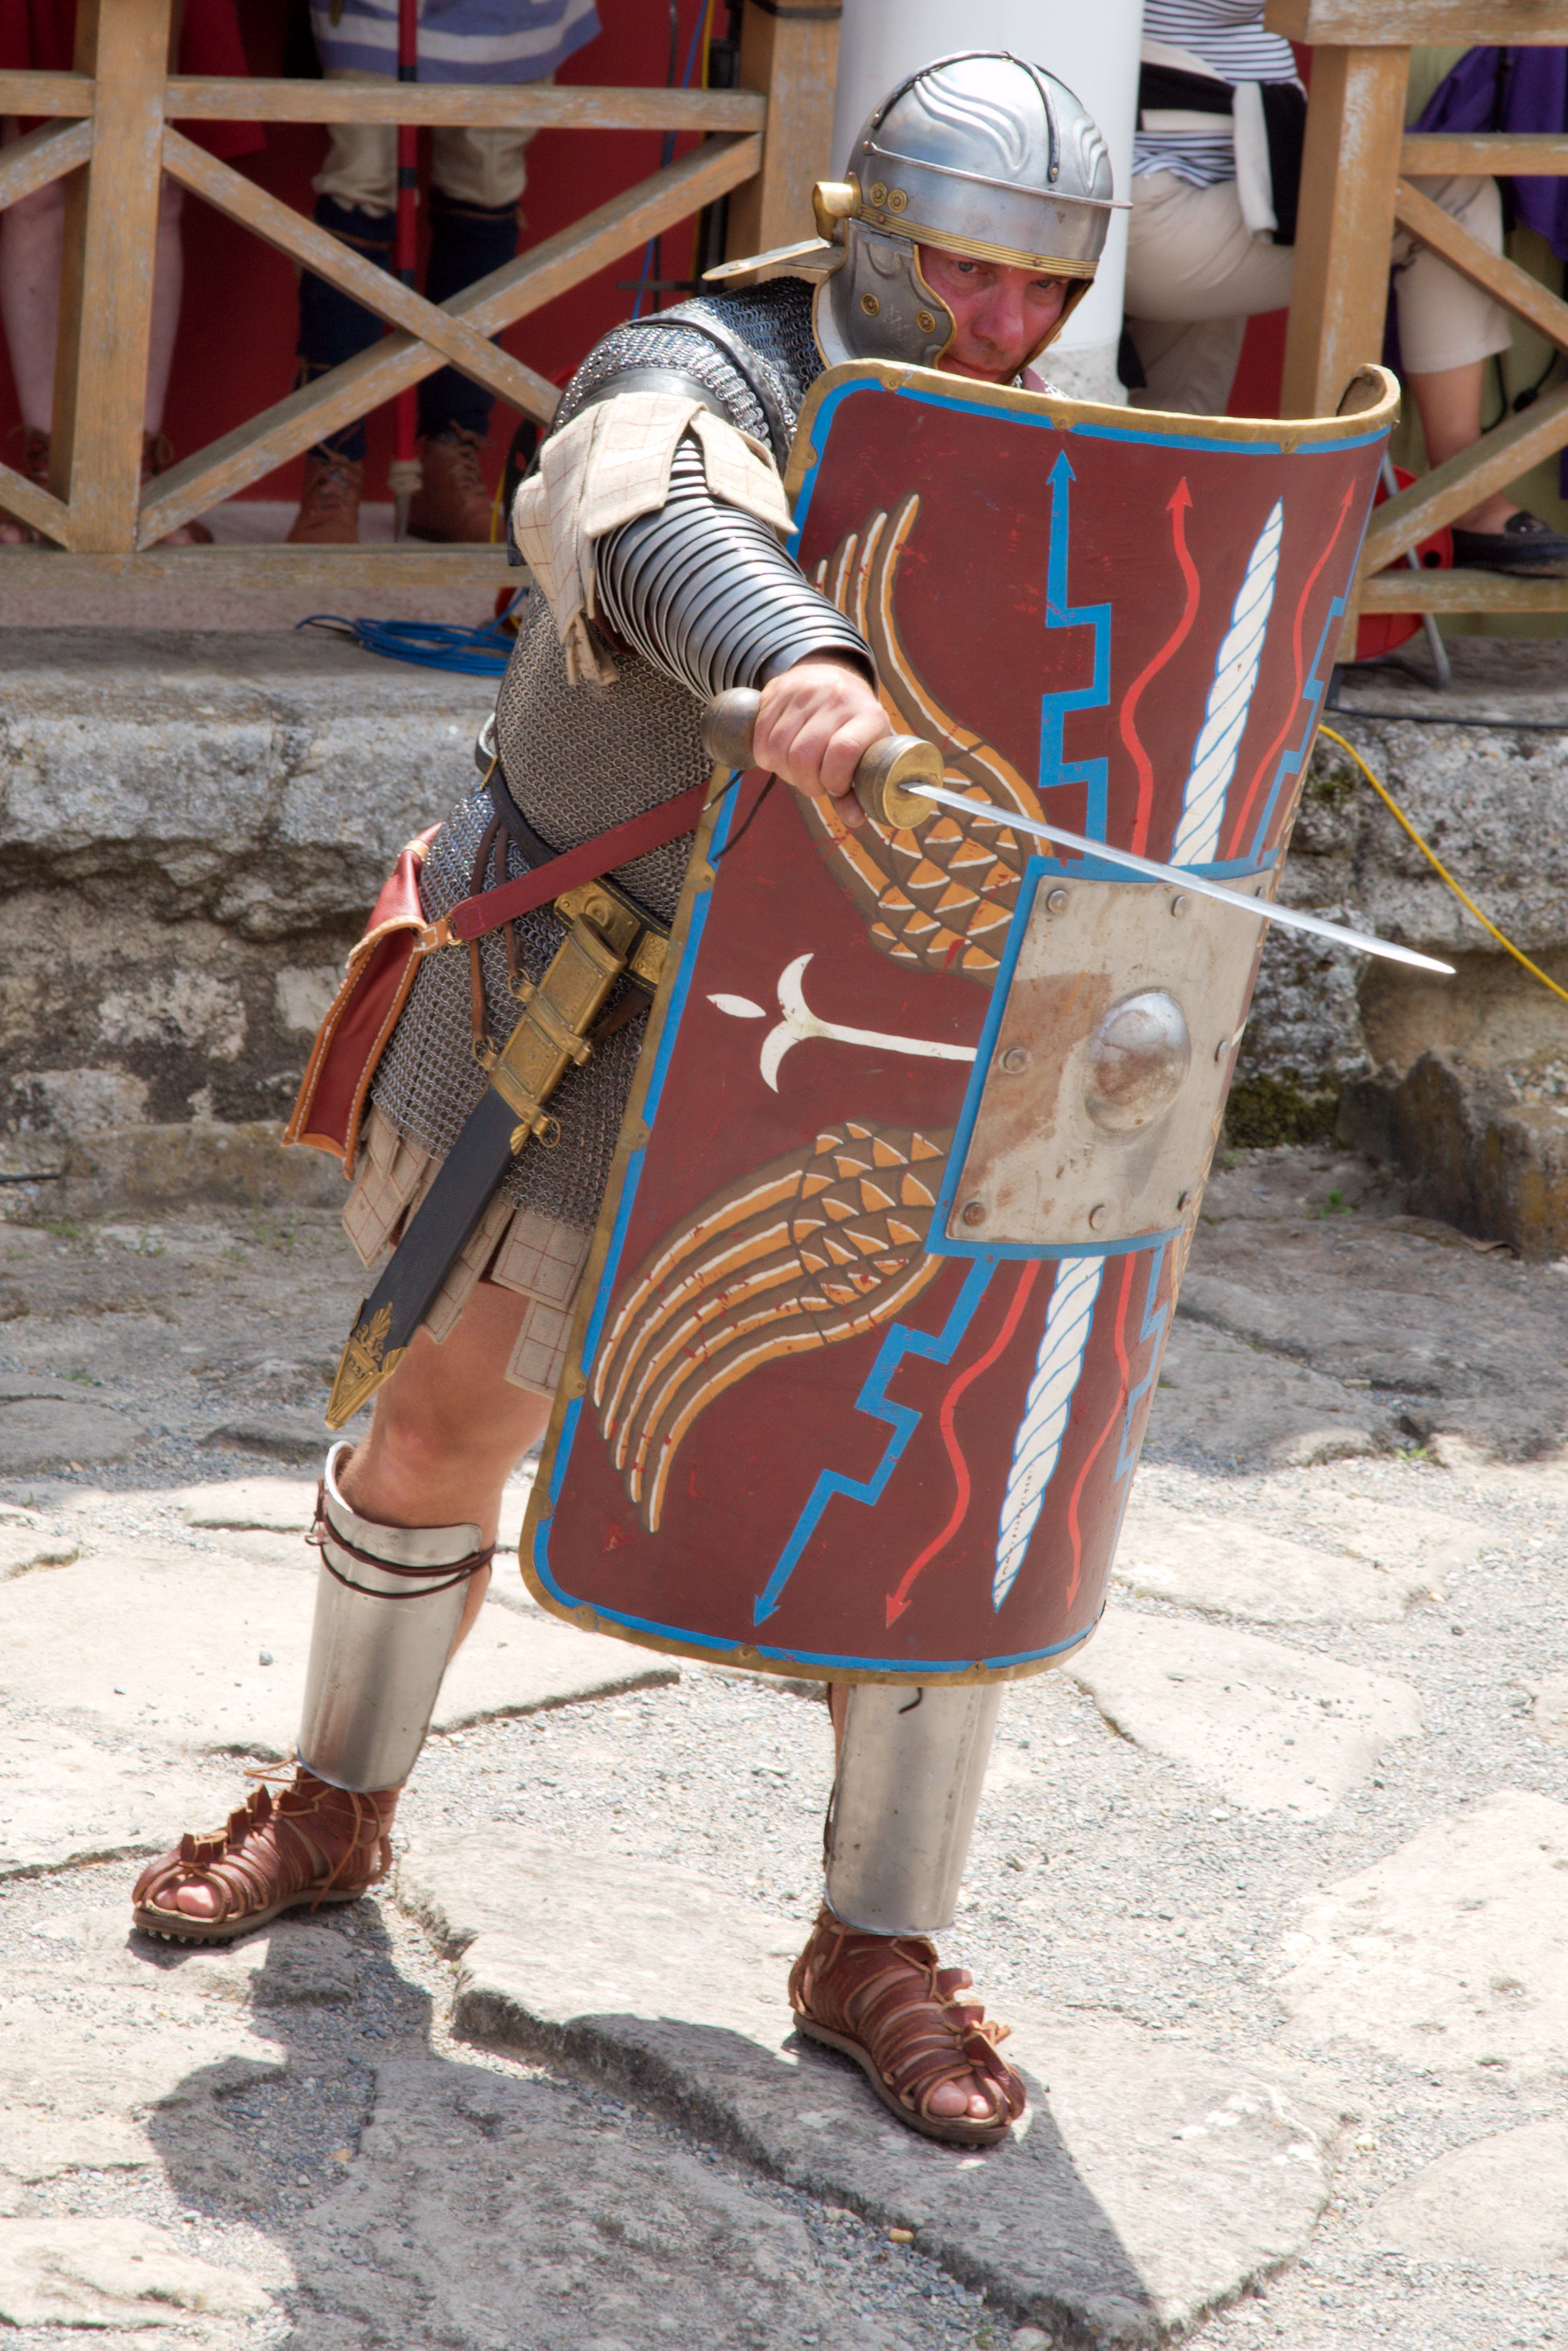 A Roman centurion with scutum raised and stabbing with a gladius